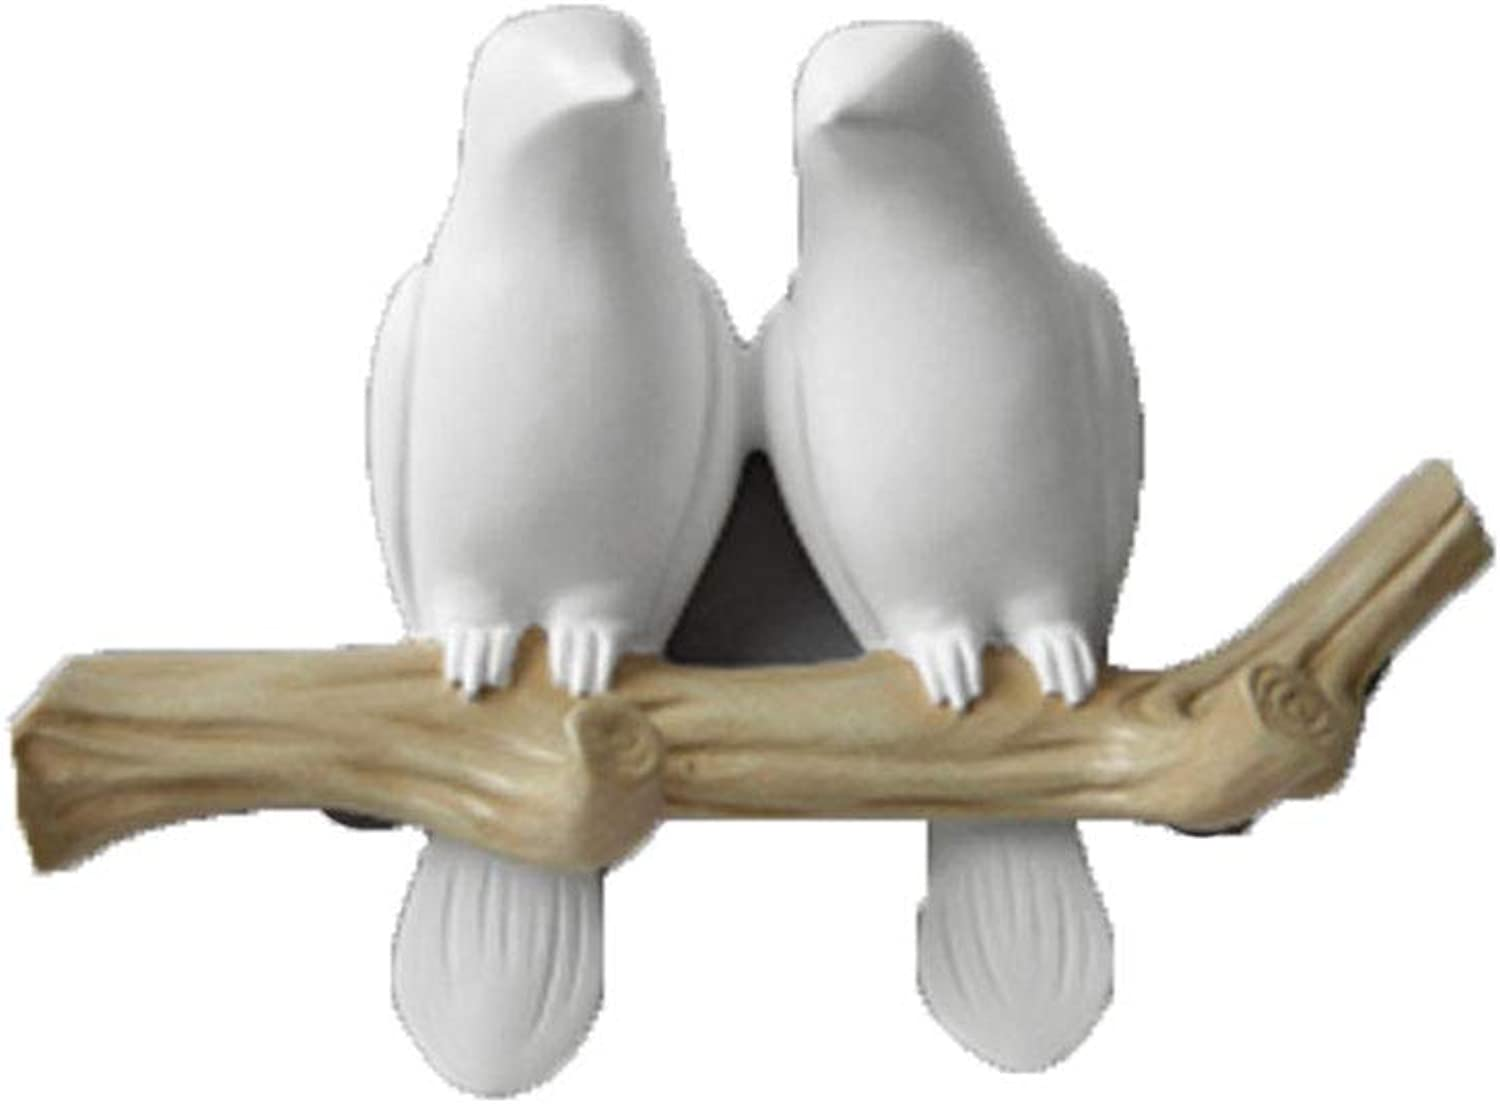 American Bird Hook Wall Coat Rack Wall Decoration Key Holder (Size   20cm)